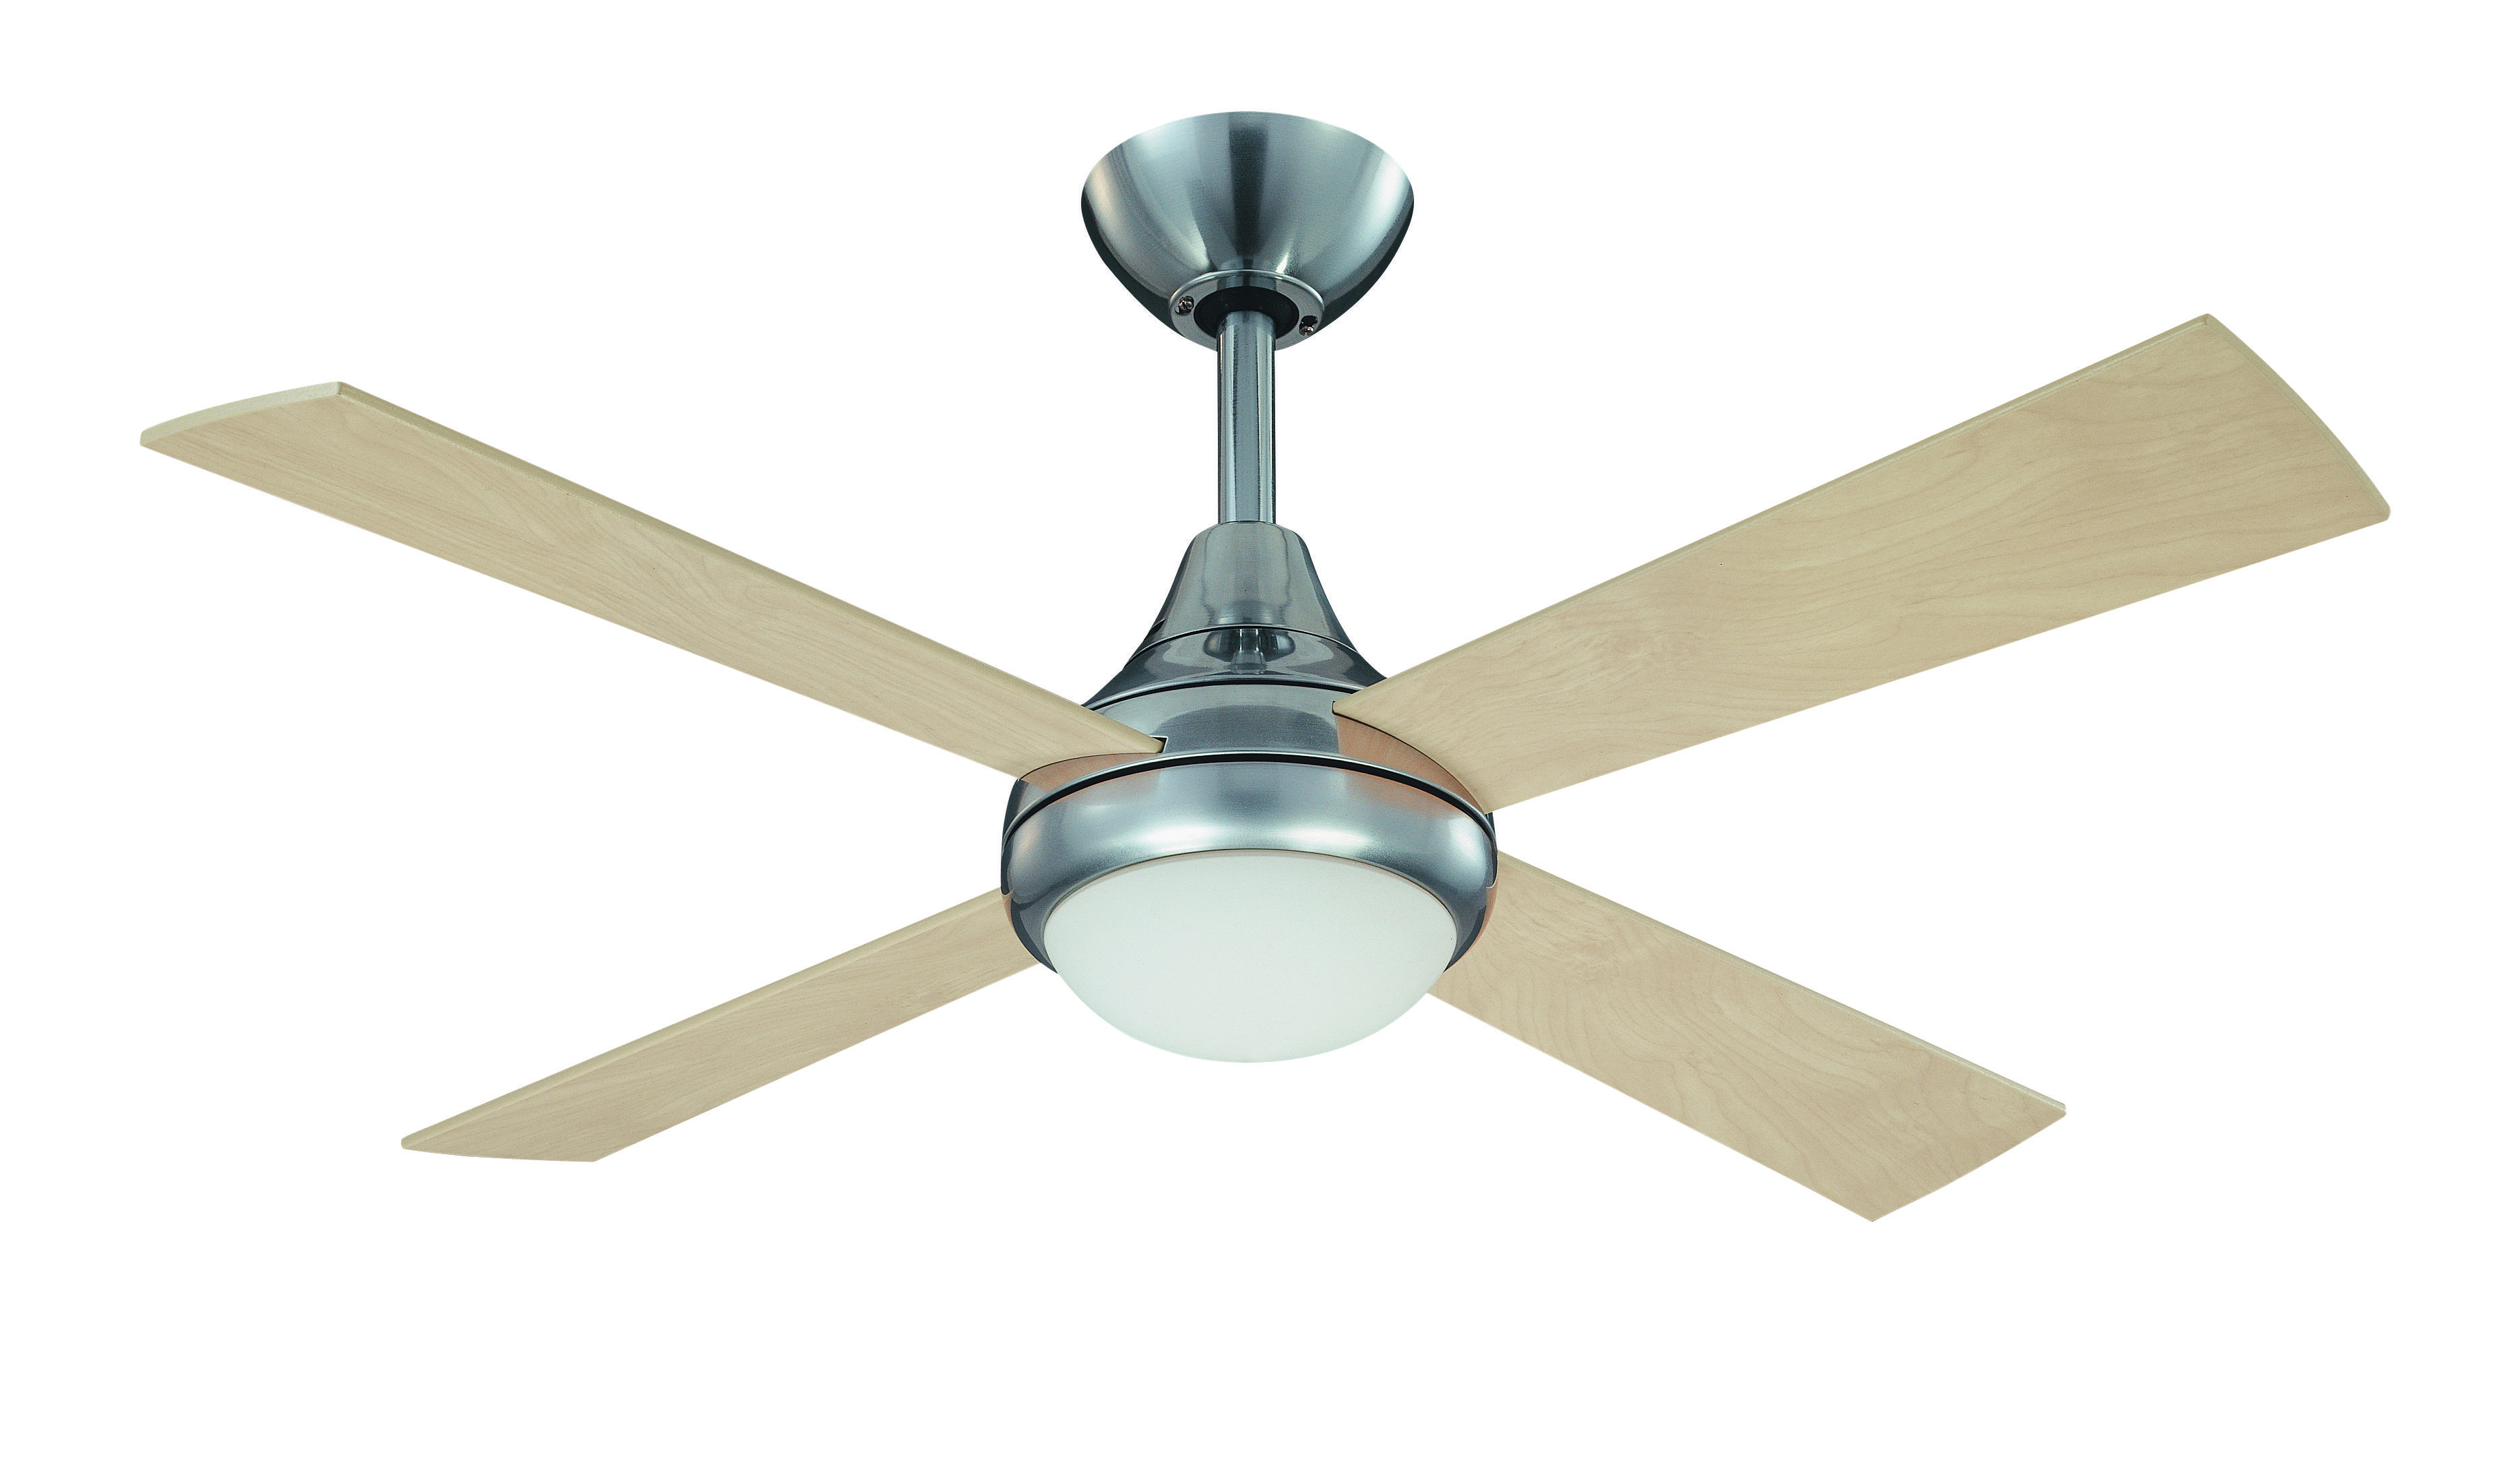 Control Ceiling Fan : Fantasia sigma stainless steel ceiling fan remote